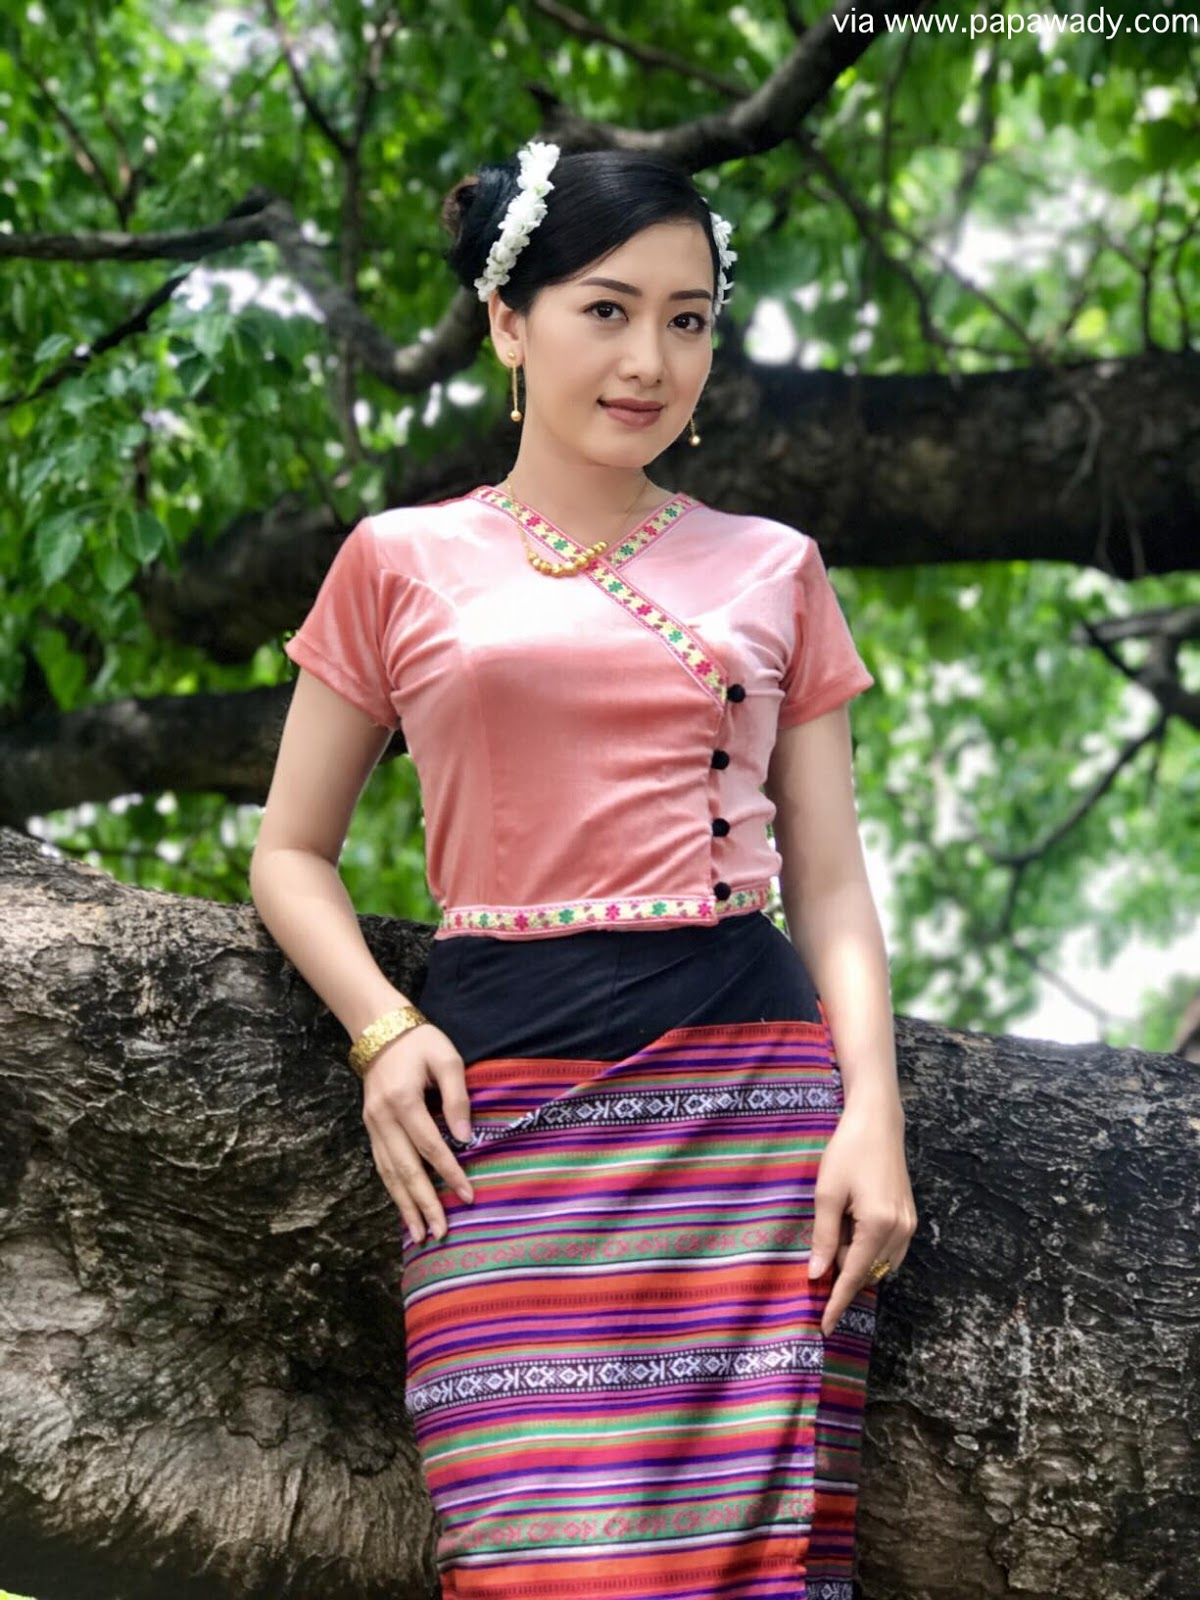 Myanmar Girl Naked Photo